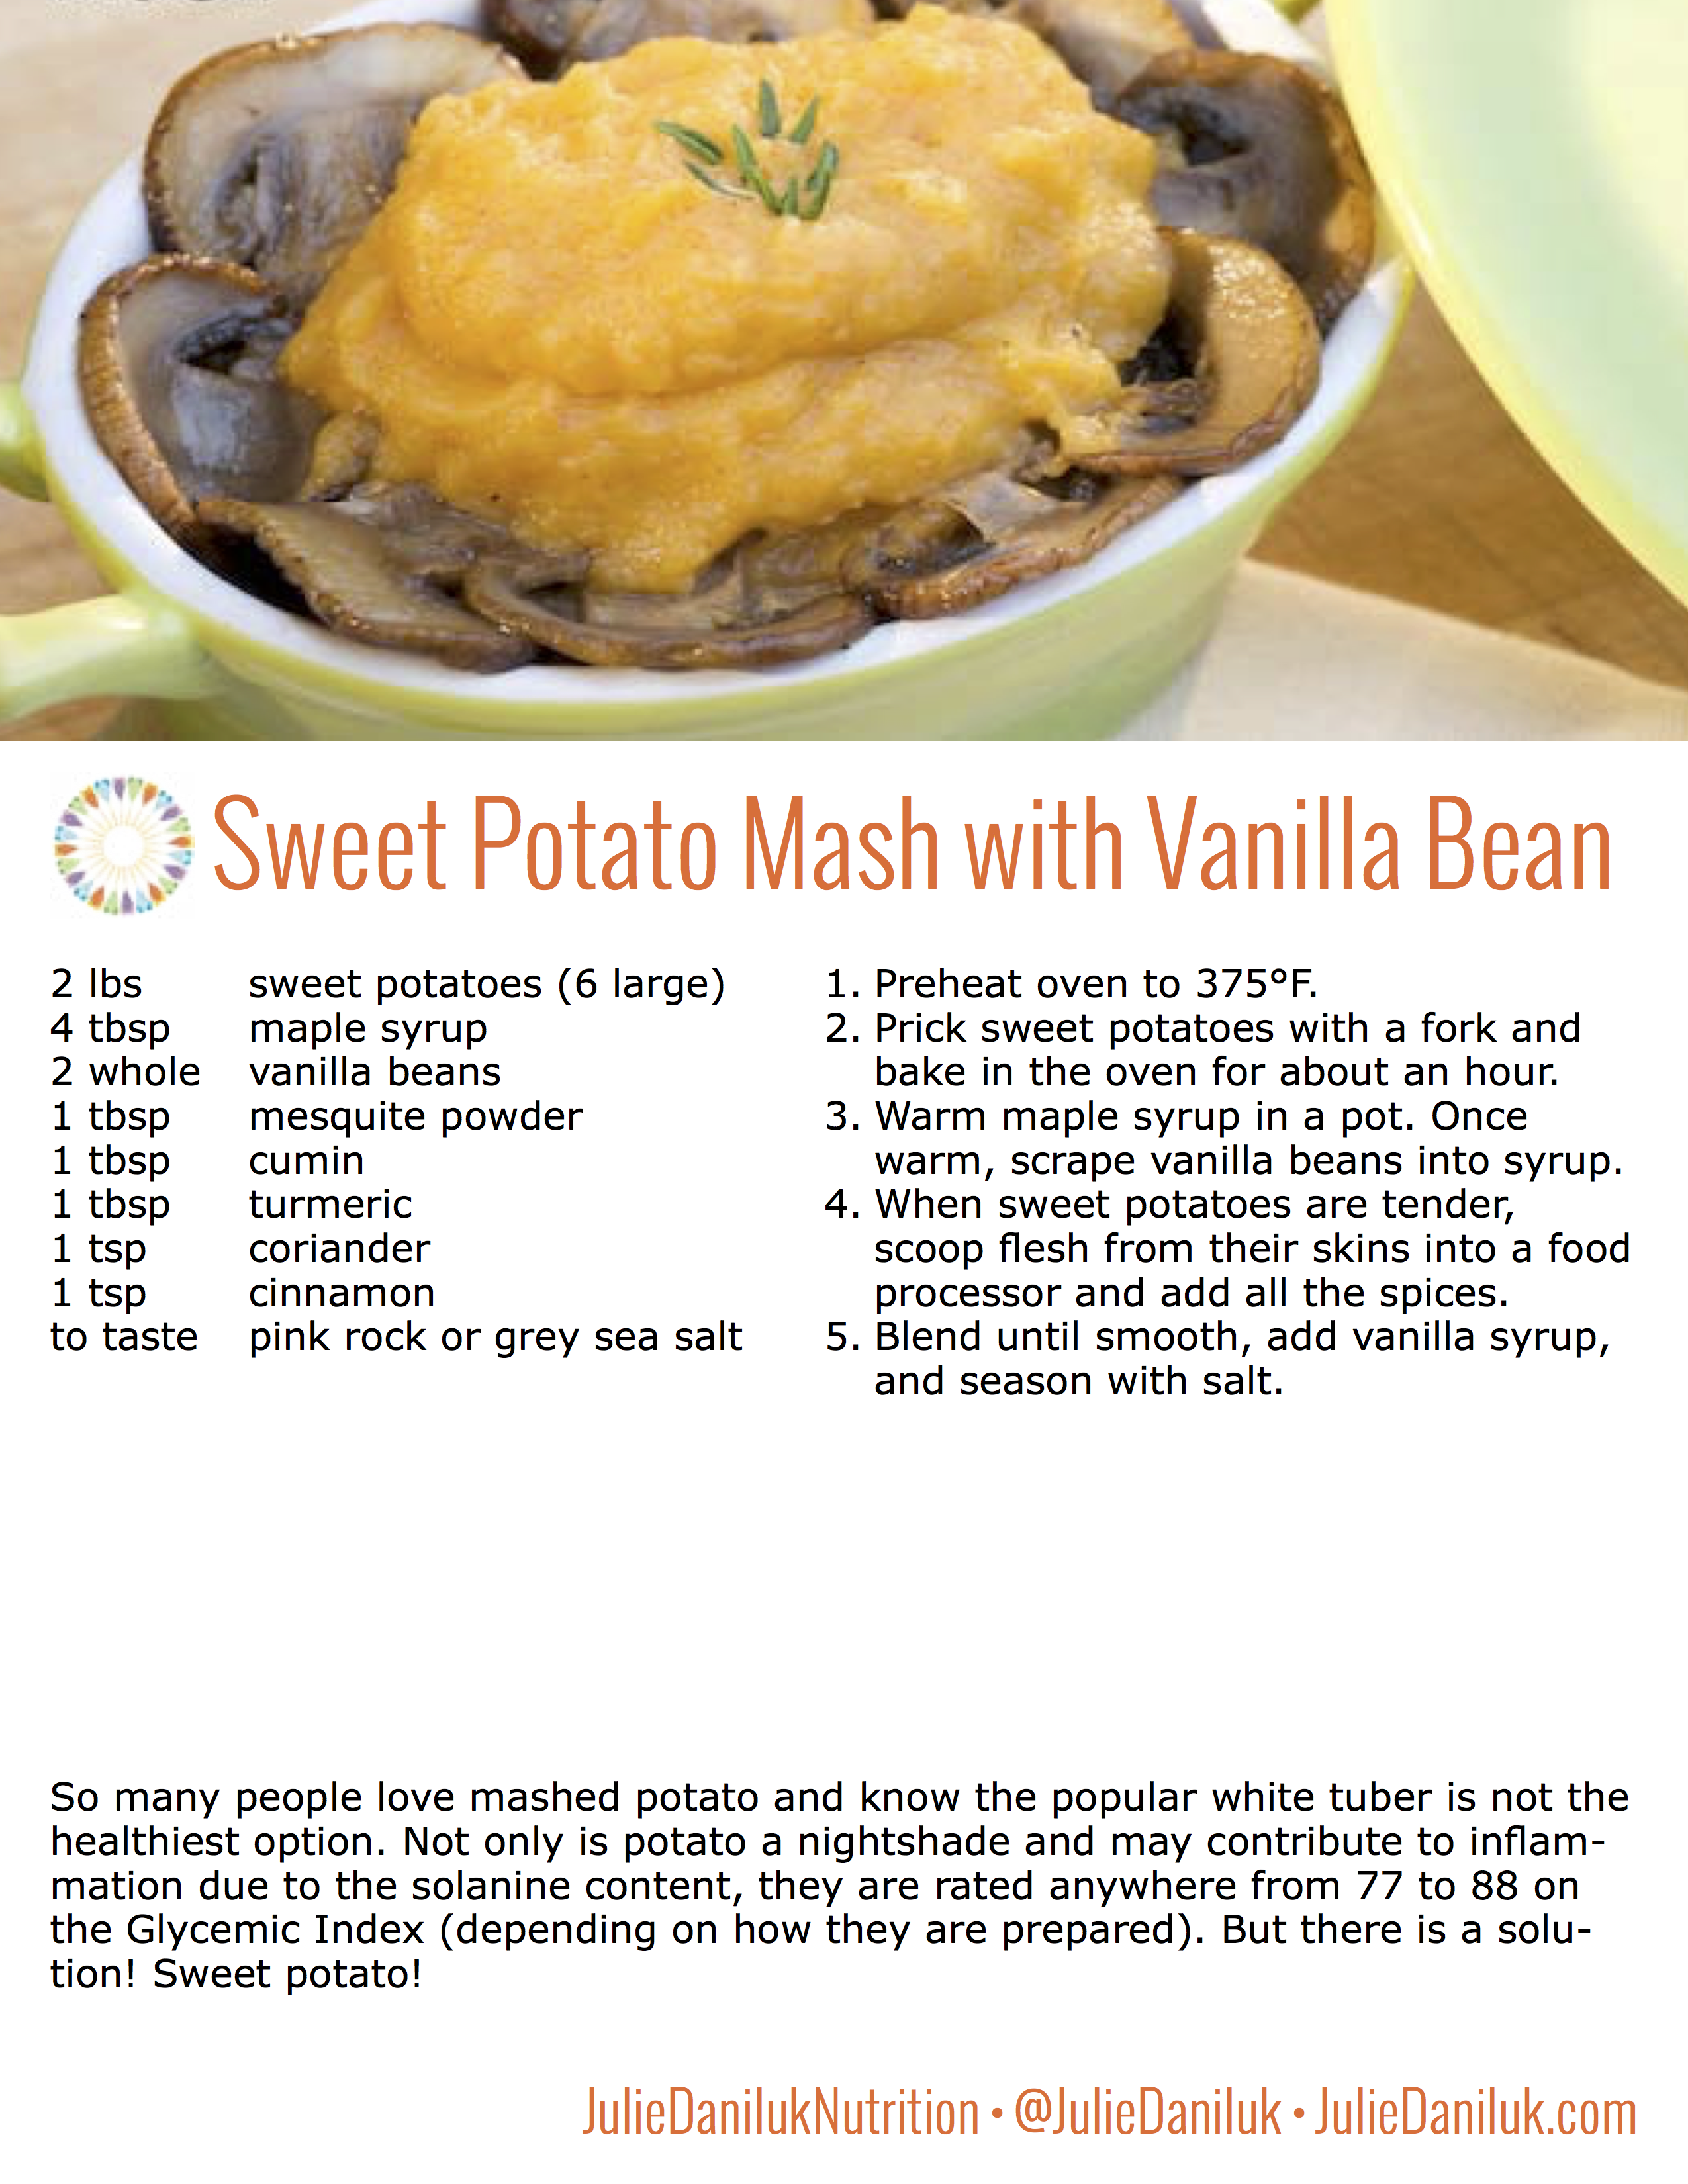 Sweet Potatoes | delicious & healthy swap for inflammatory potatoes